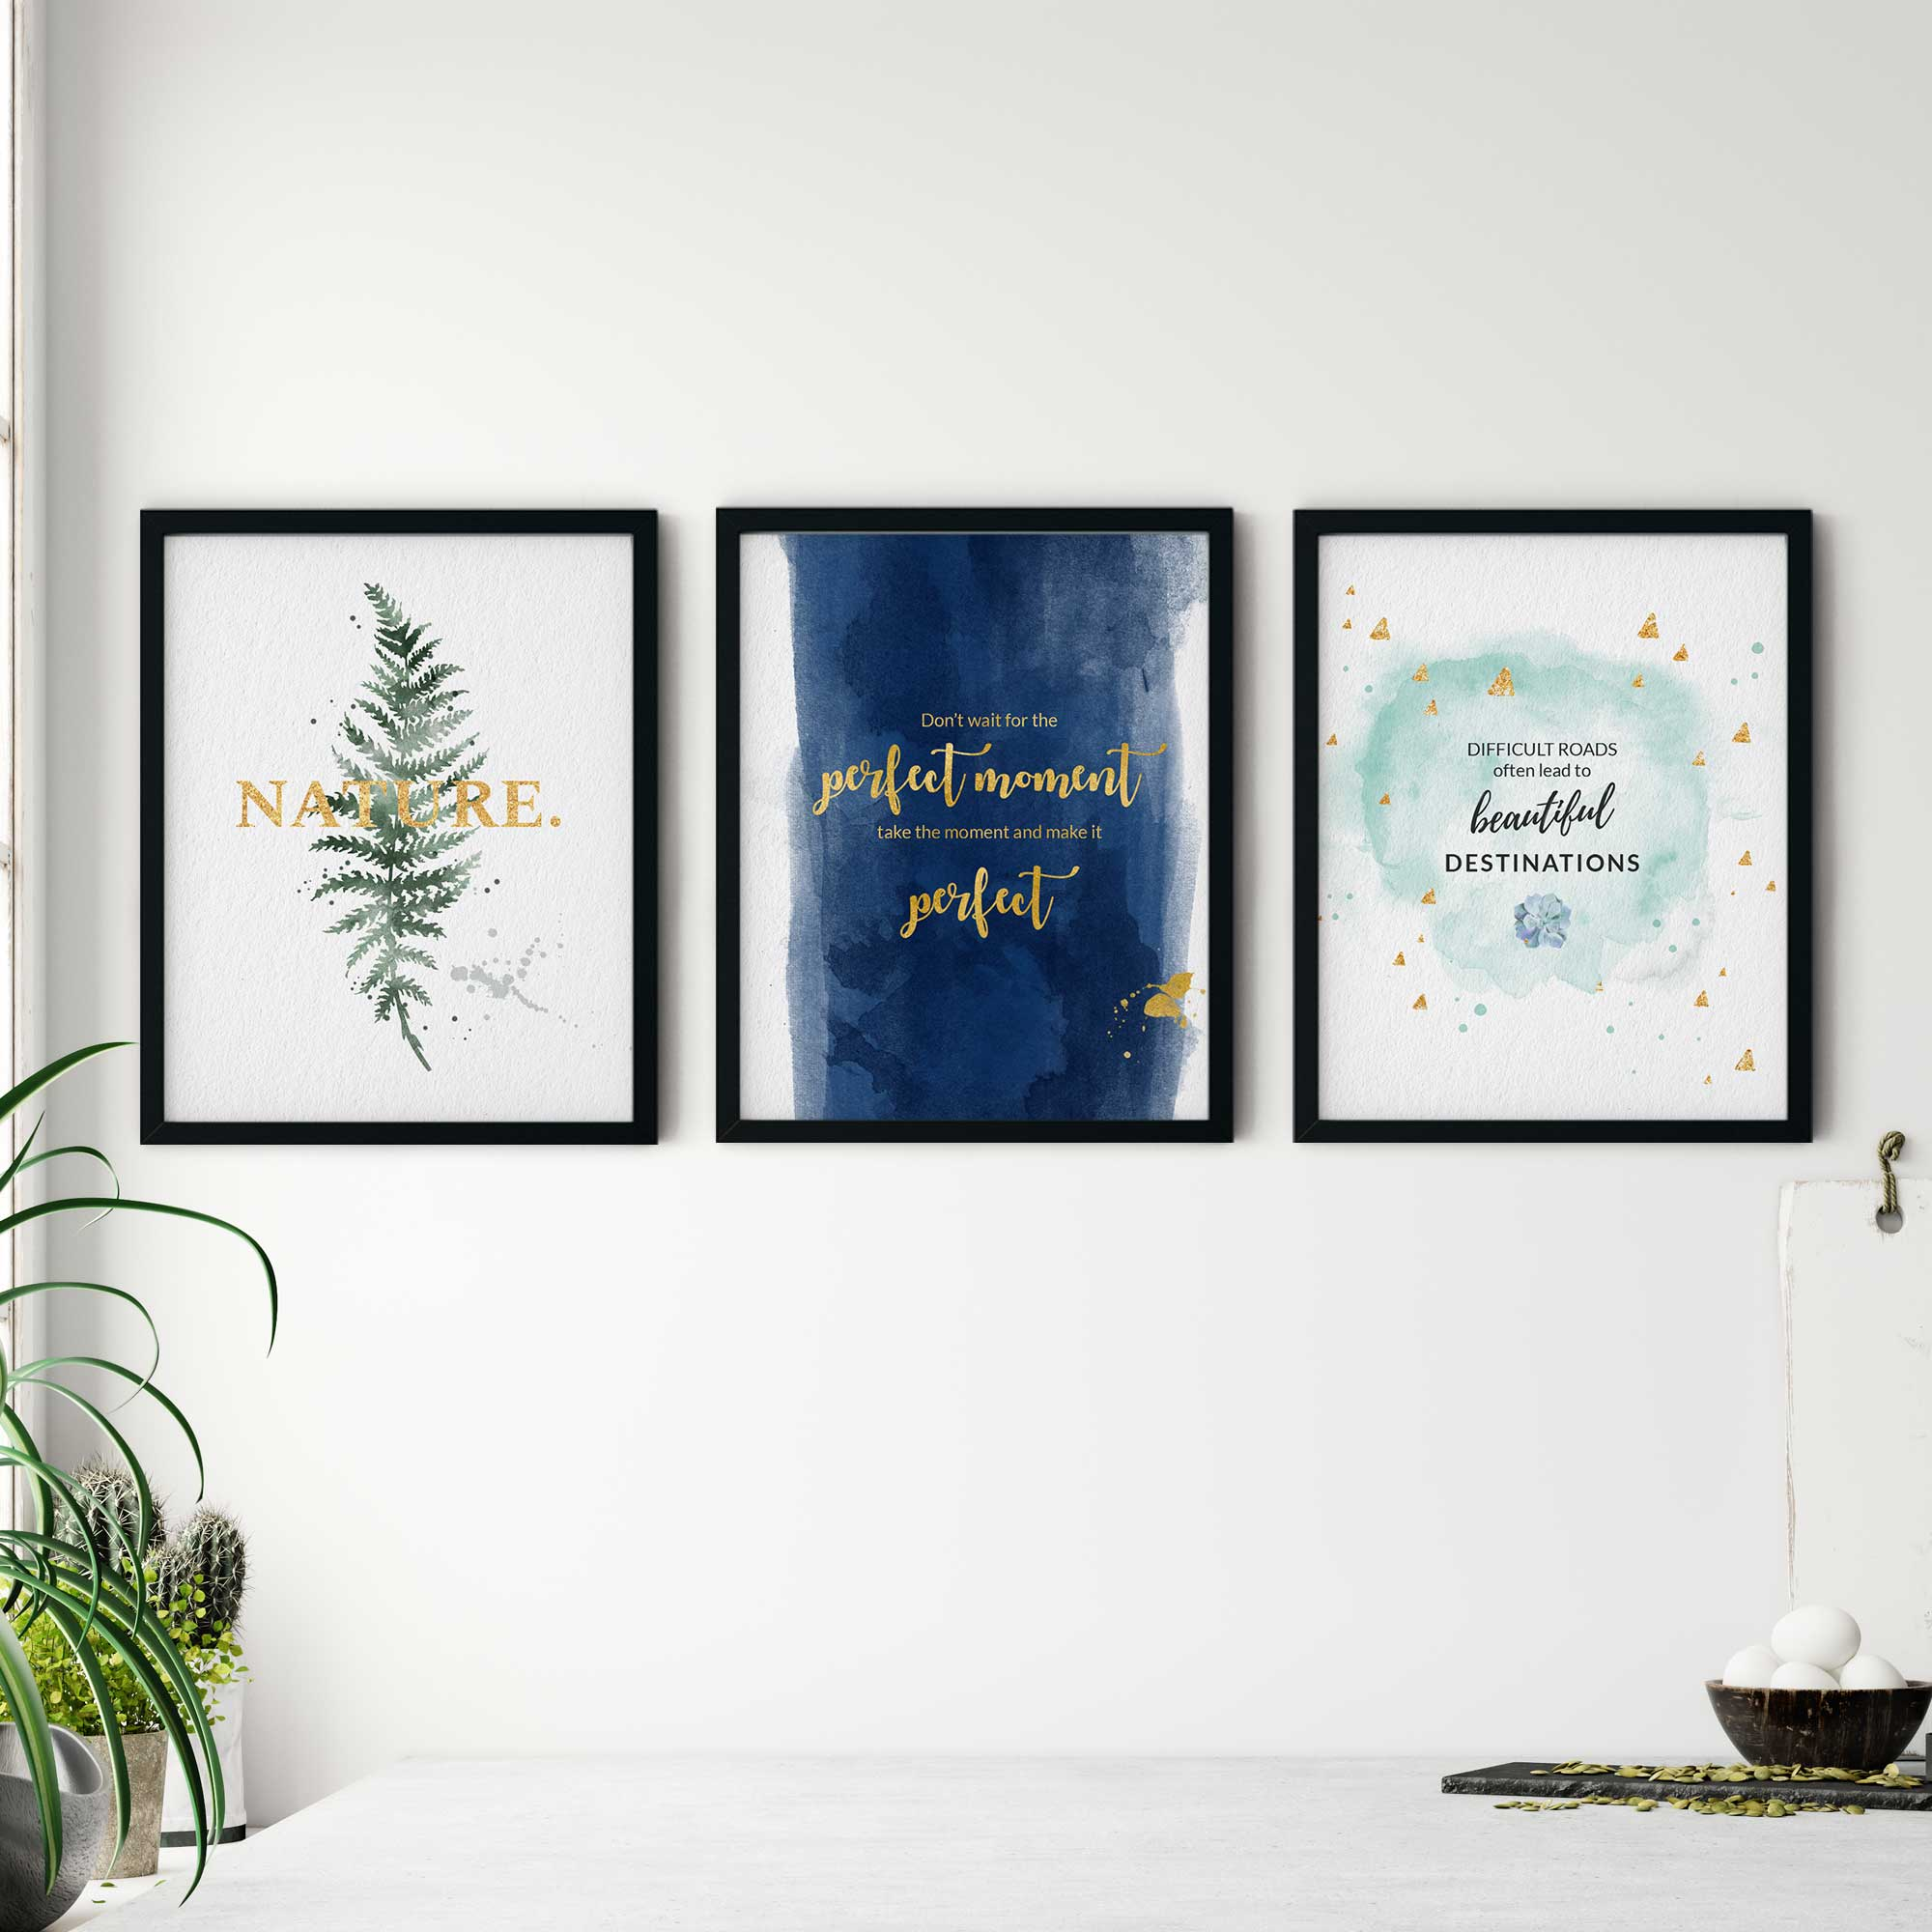 3 Glass Front 8x10 Photo Picture Frames Set with Digital Prints theme Gold Motivational Quotes for Minimalist Living Room, Bedroom, TV Lounge, Study Room Modern Wall Hanging Art